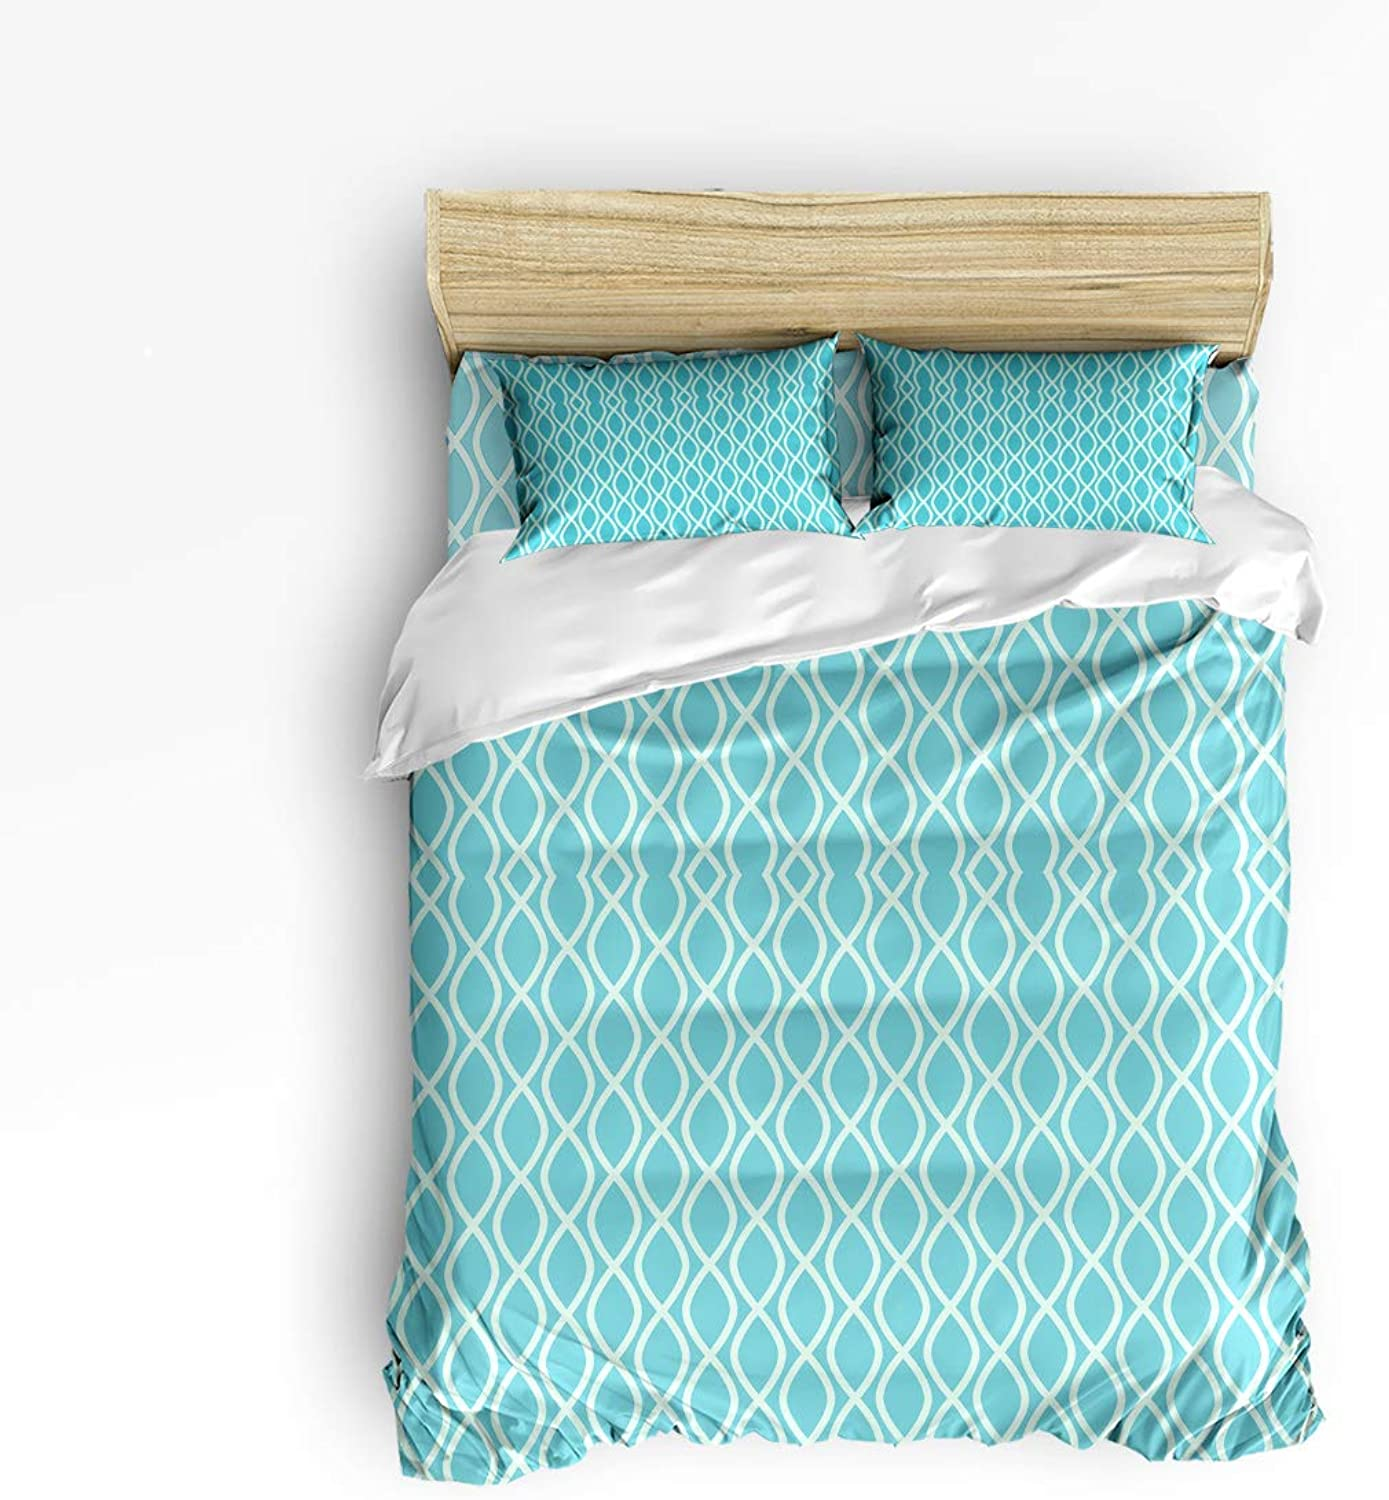 Fandim Fly Bedding Set Twin Size bluee Green Fish Patterns Geometric Pattern,Comforter Cover Sets for All Season